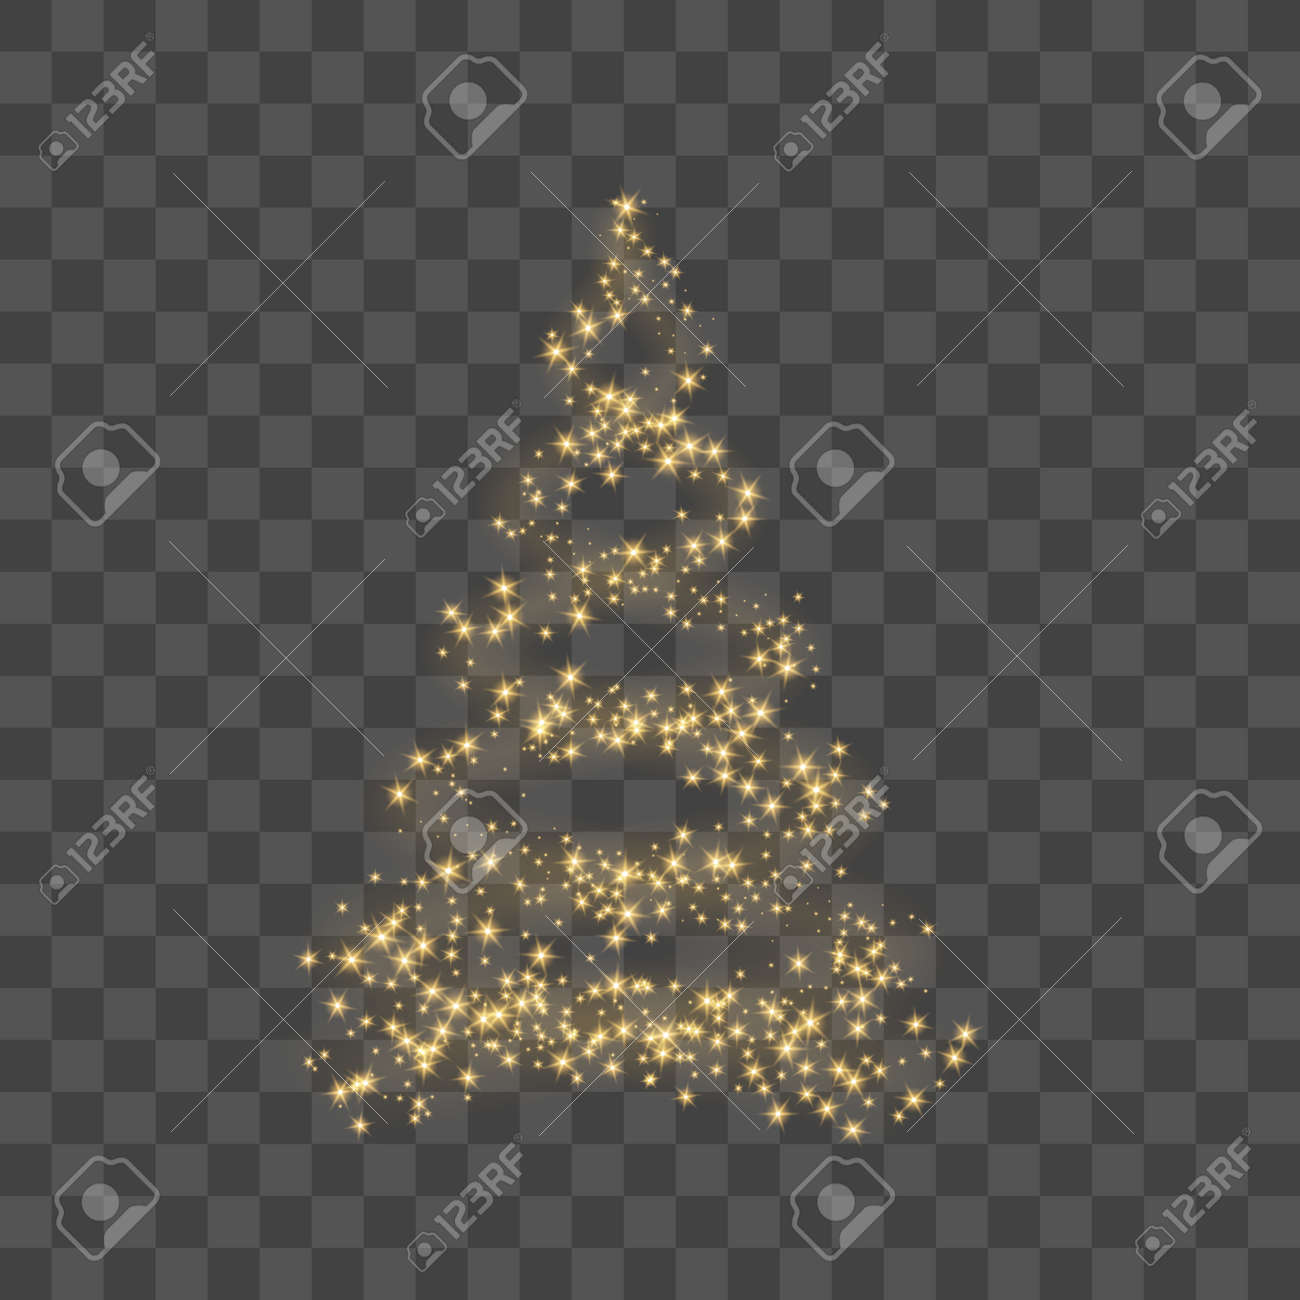 Christmas Tree On Transparent Background Gold Christmas Tree As Symbol Of Happy New Year